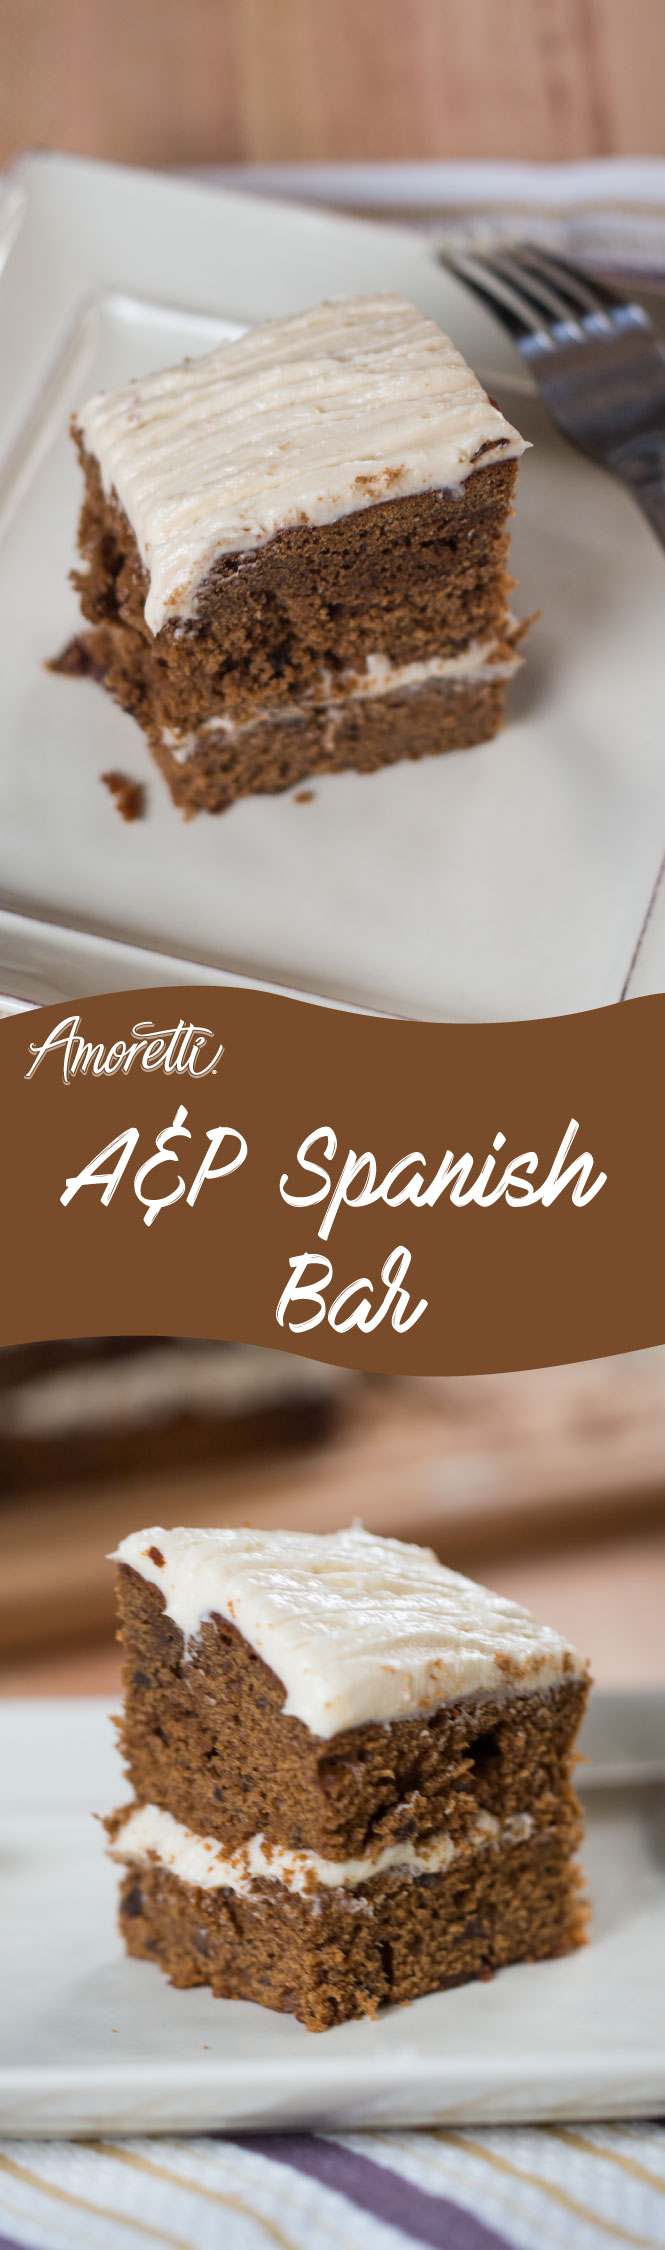 The most popular cake in the 50's and 60's, make this Spanish Bar and reminisce about those deliciously good old days!